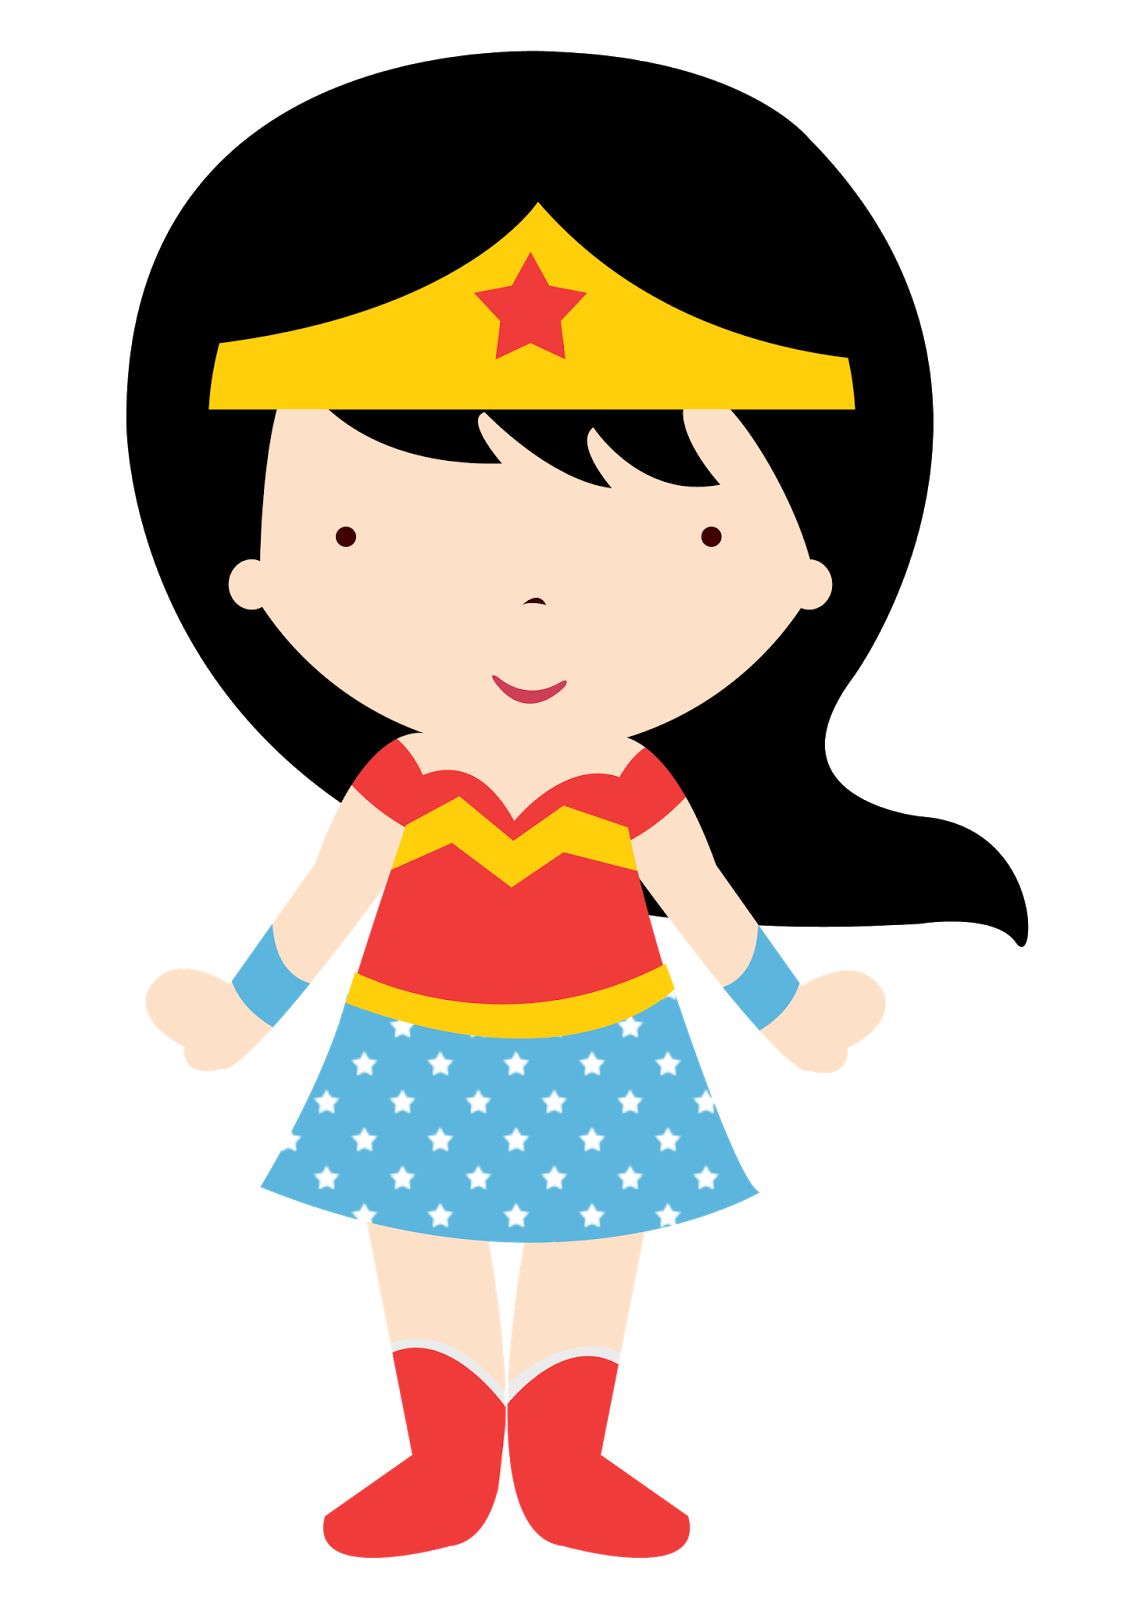 Plan clipart standard. Wonder woman baby camp